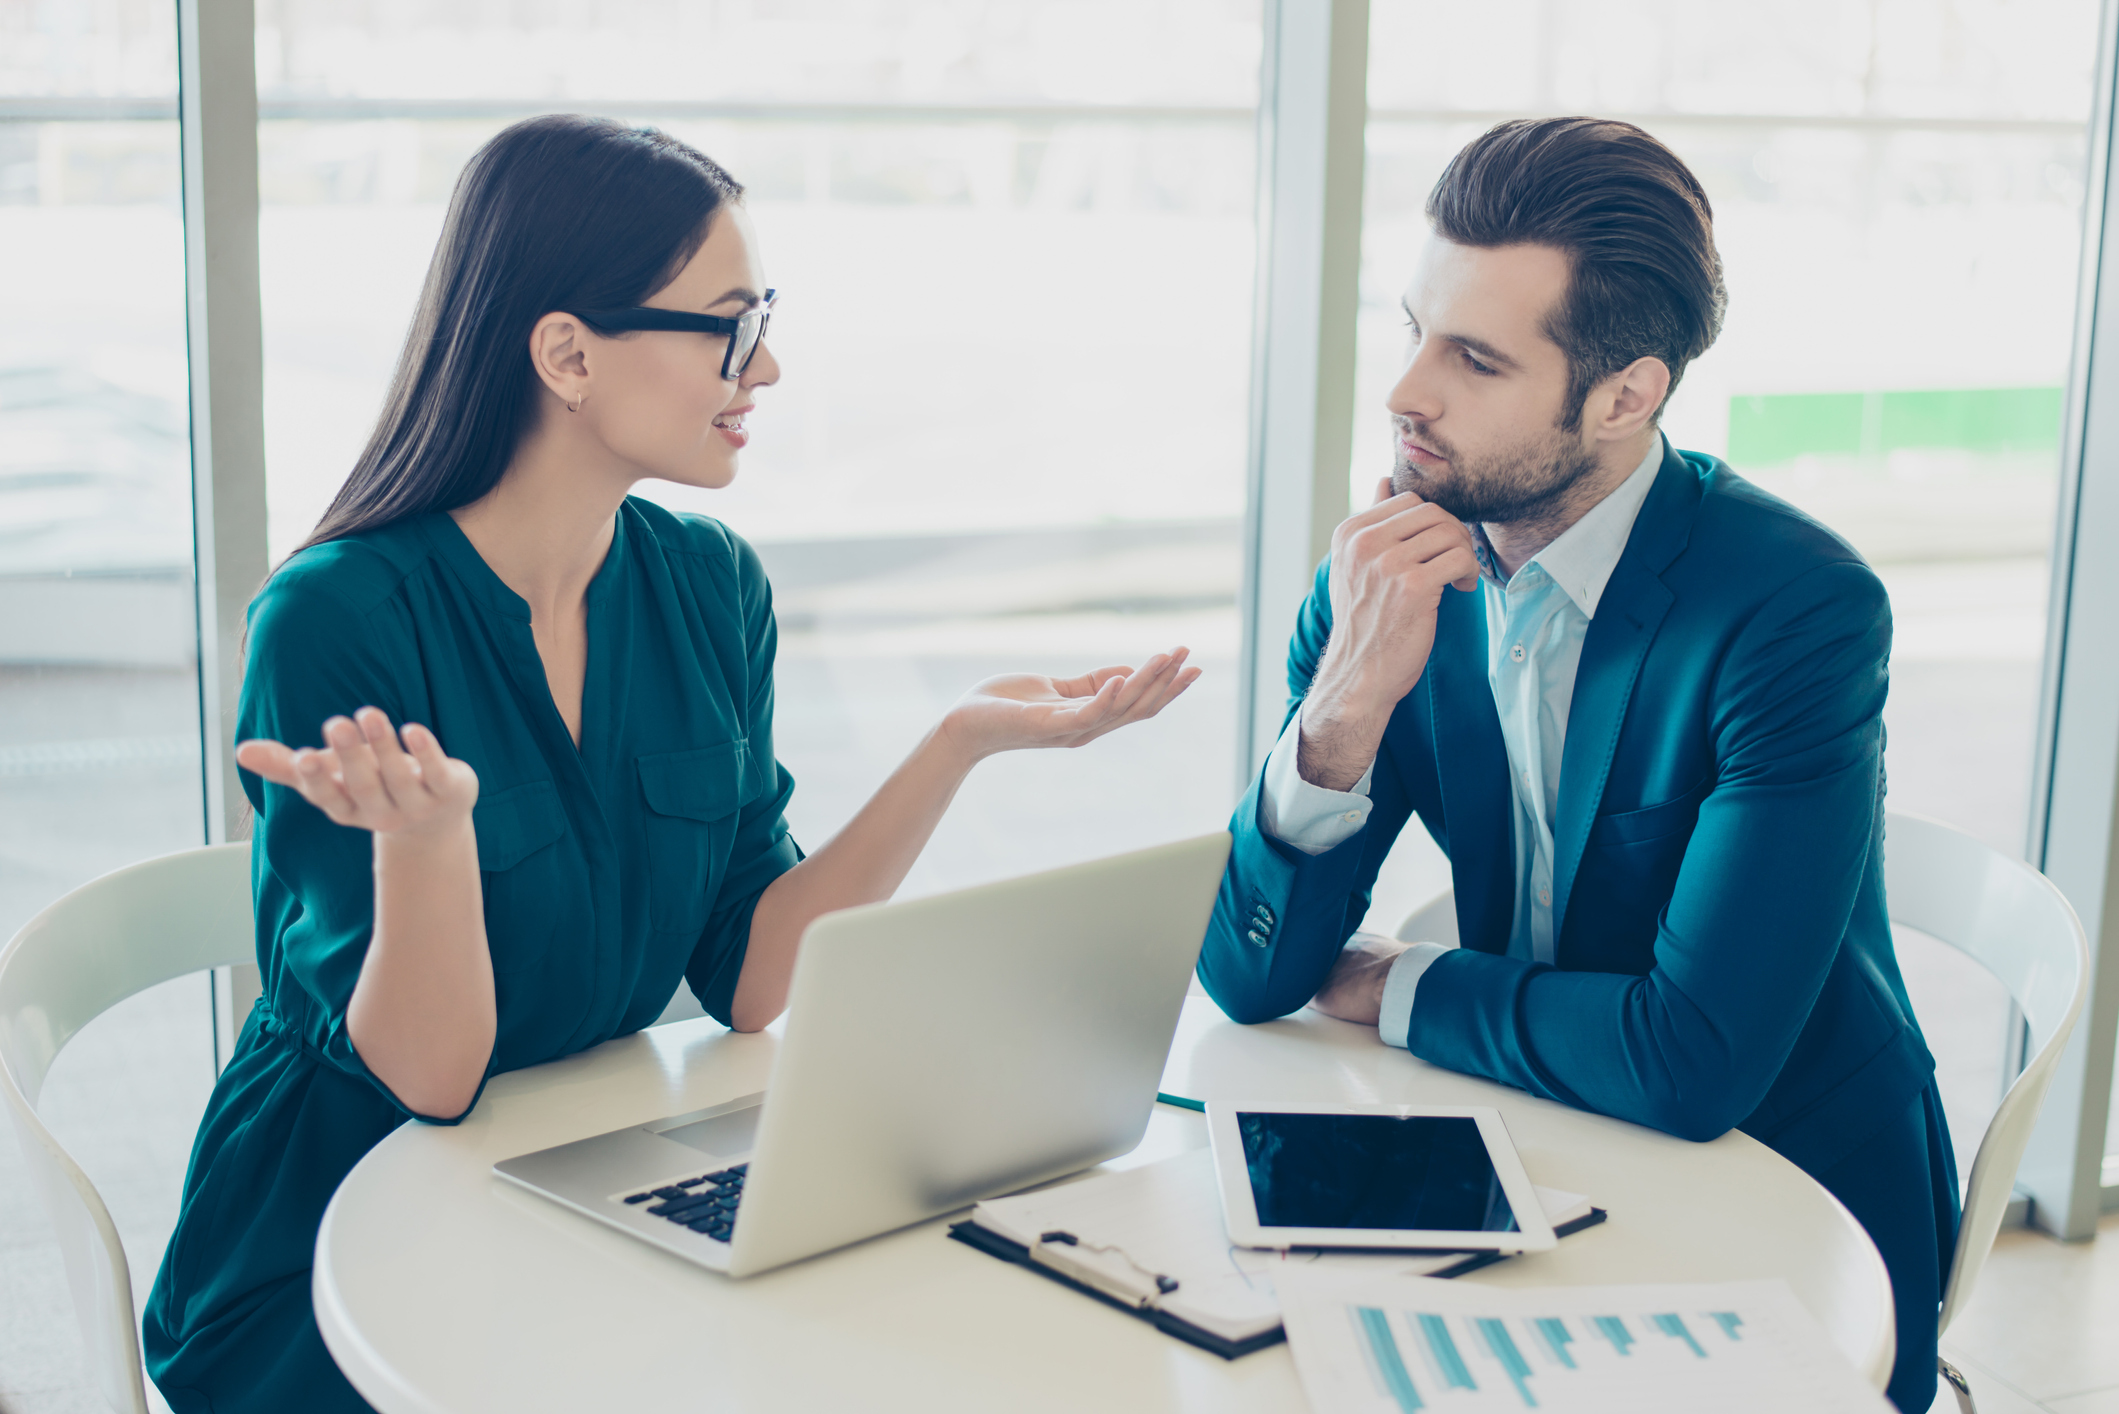 How to Approach Difficult Conversations with Co-workers